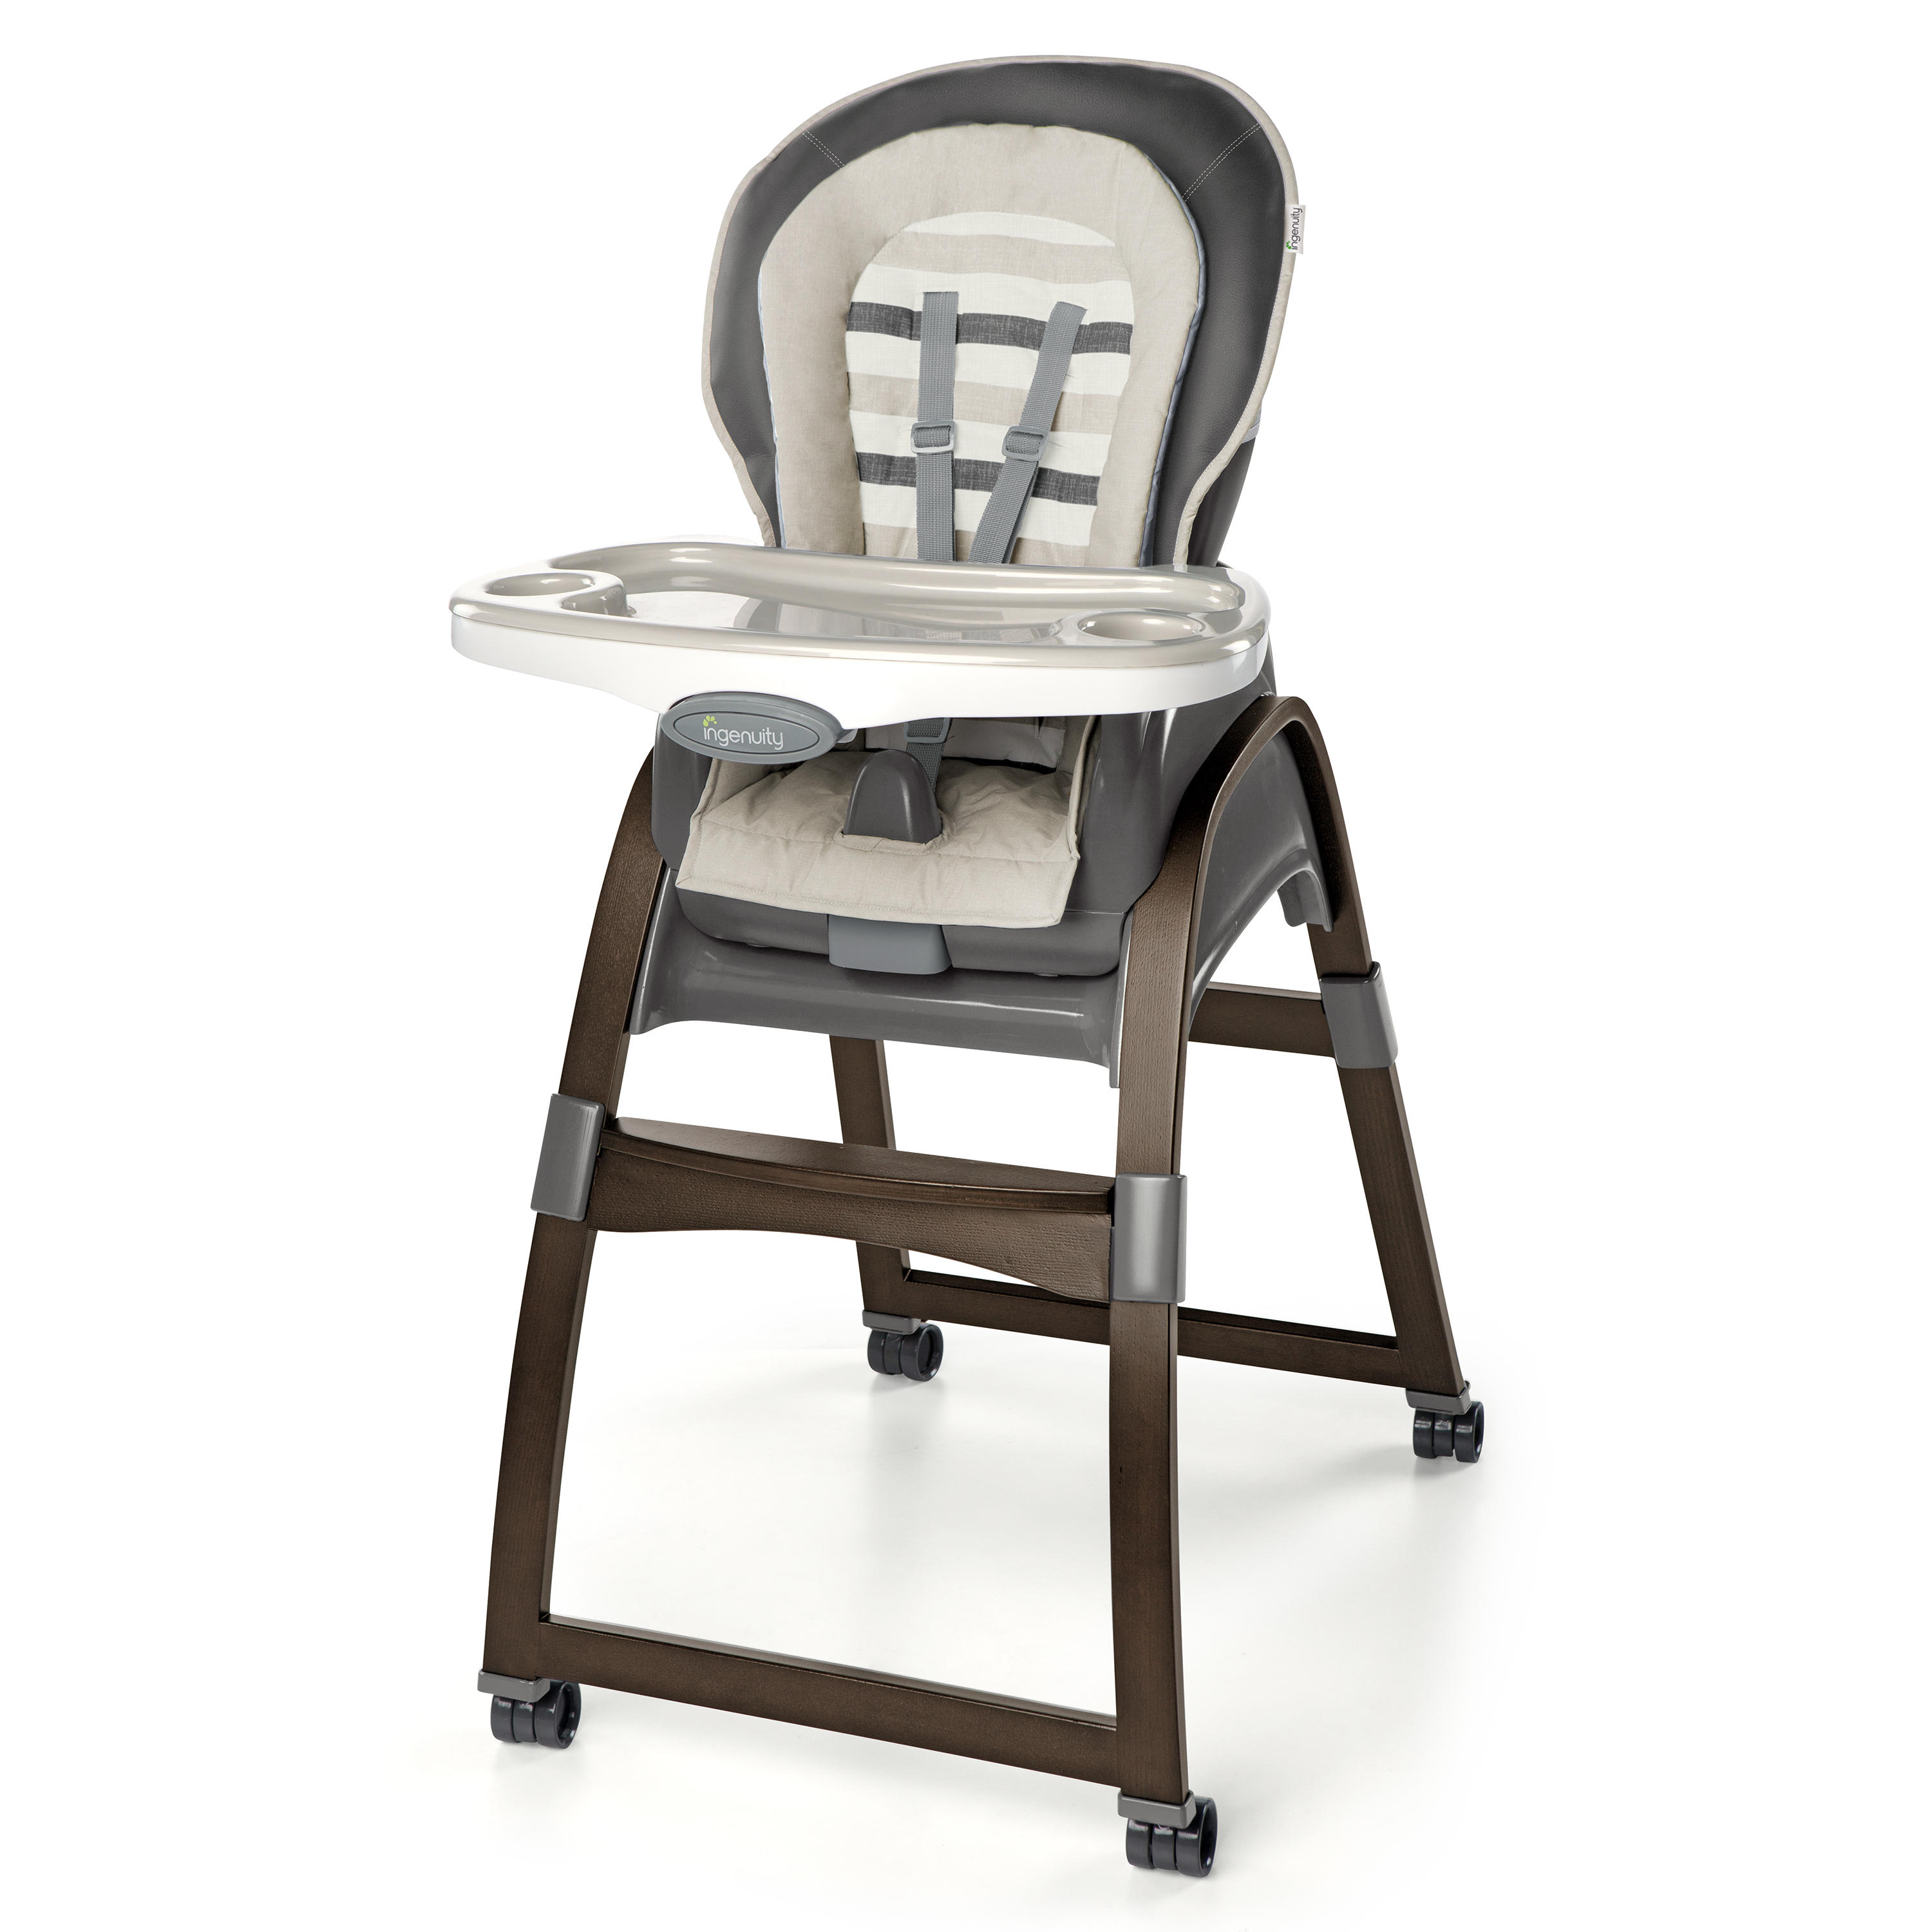 ingenuity high chair 3 in 1 cover cheap wholesale covers for sale trio wood tristan